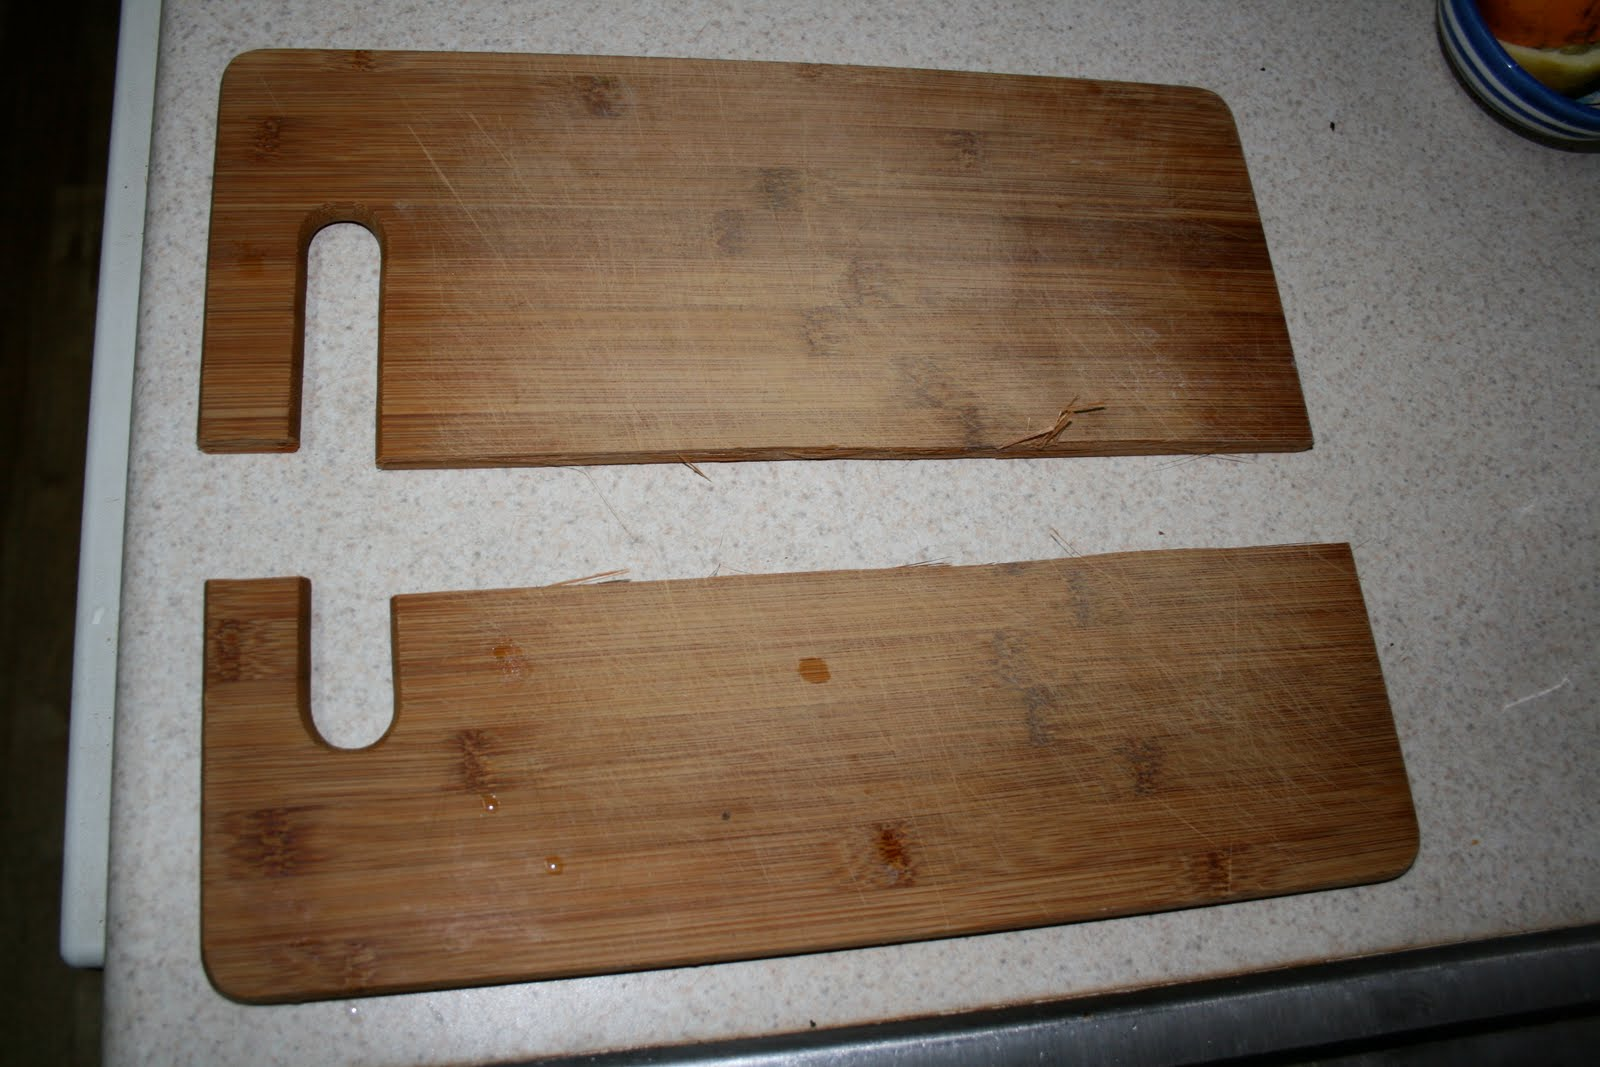 How to fix a broken chopping board